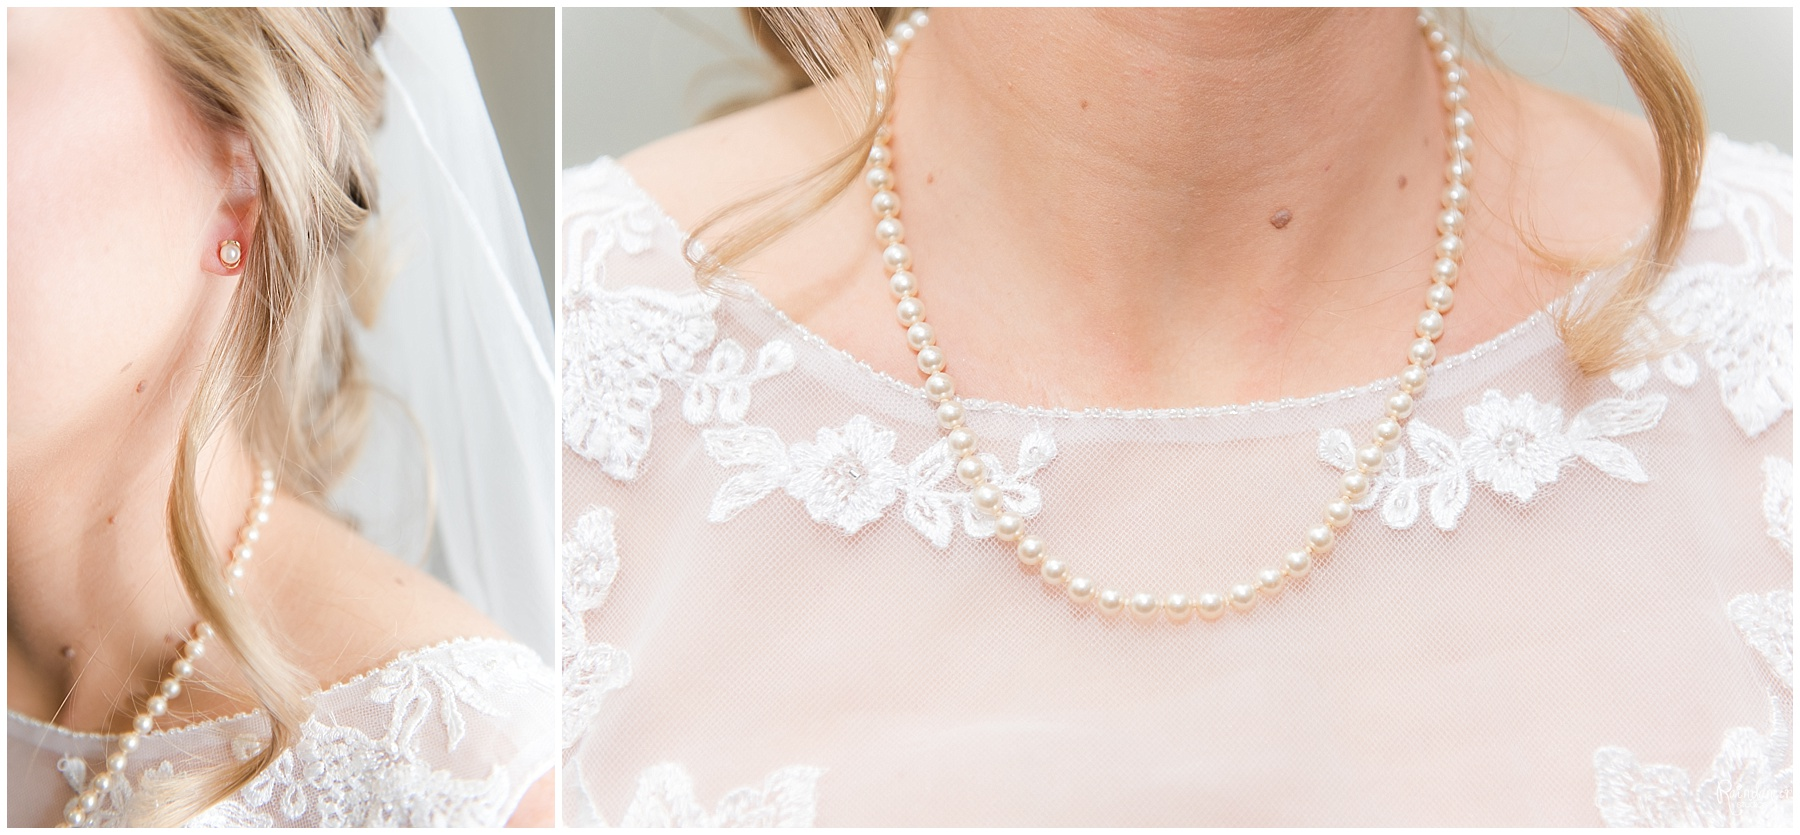 Brides pearls on her neck by Raindancer Studios Indianapolis Wedding Photographer Jill Howell